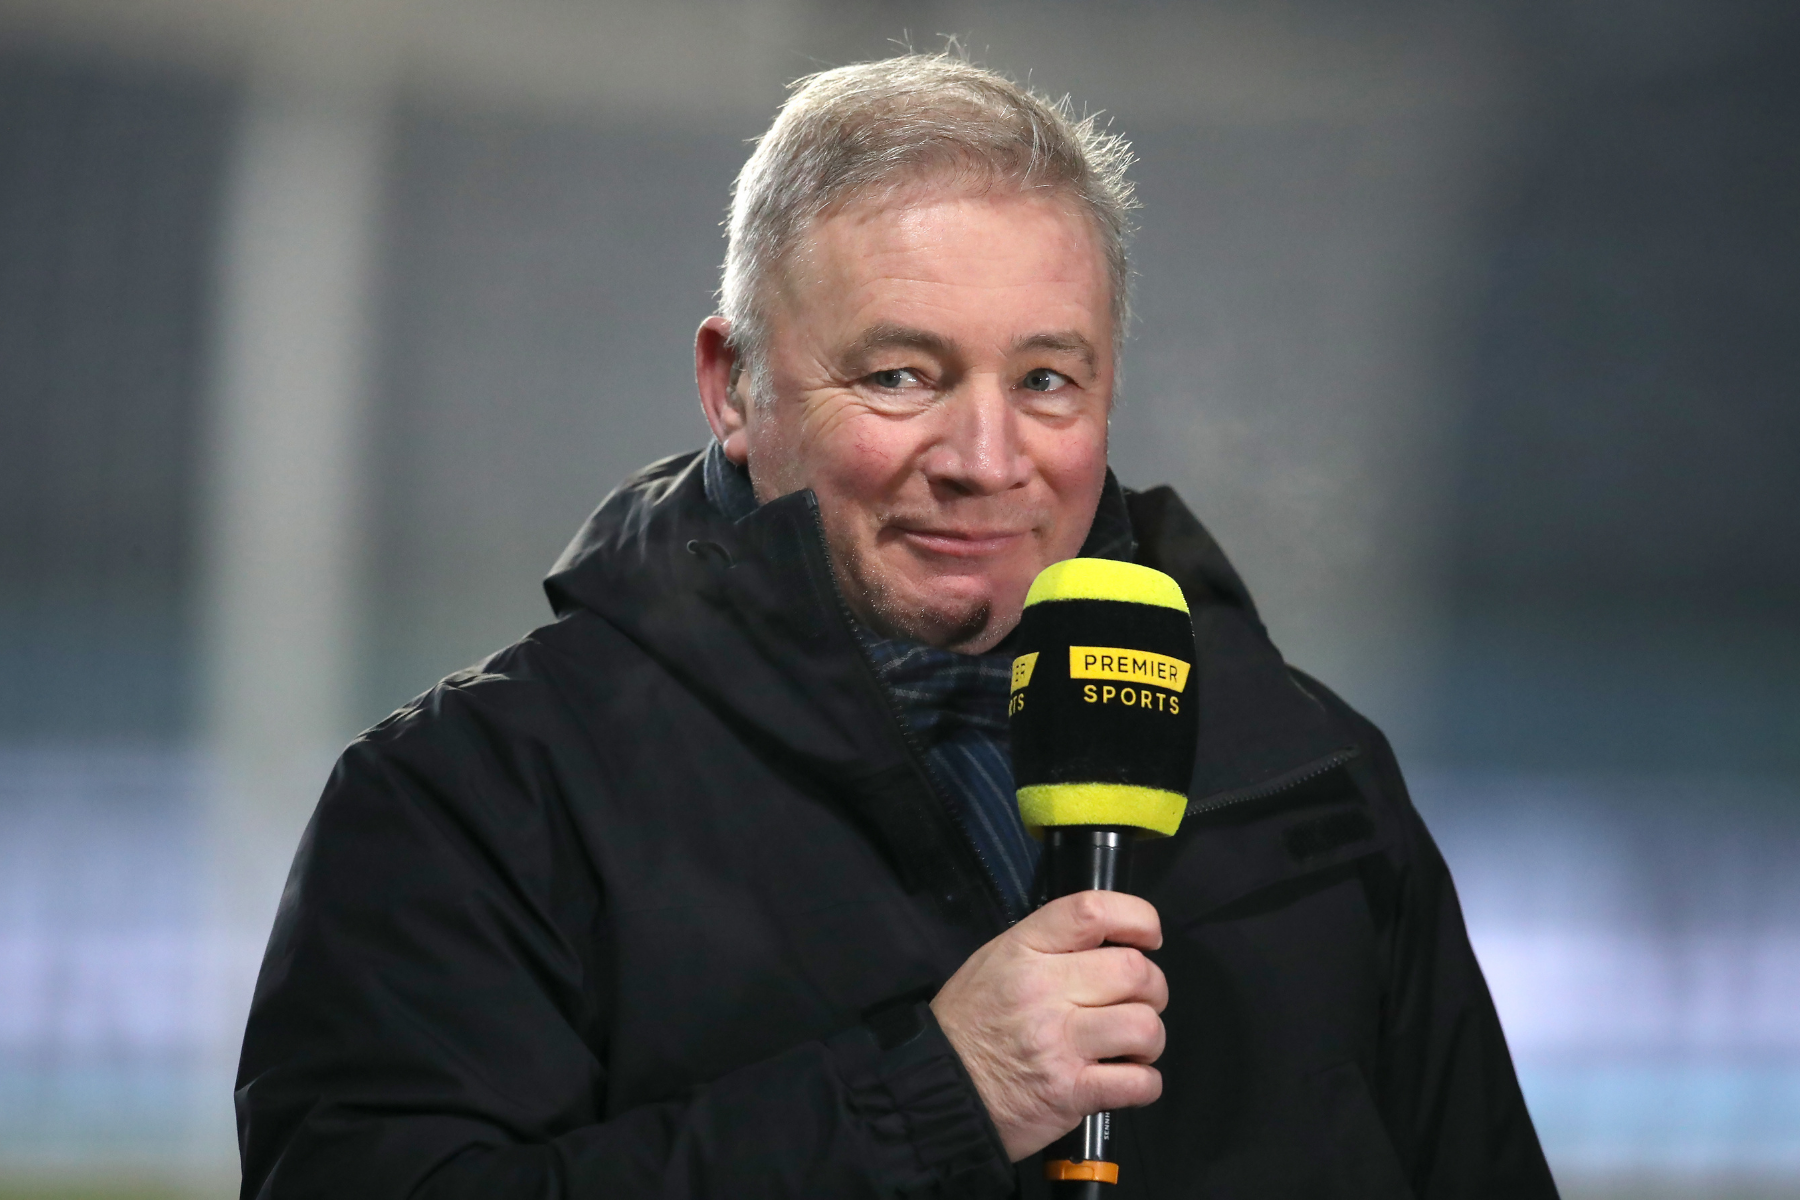 Scotland and Rangers hero Ally McCoist fires cheeky dig at England as he details plans for Euro 2020 final